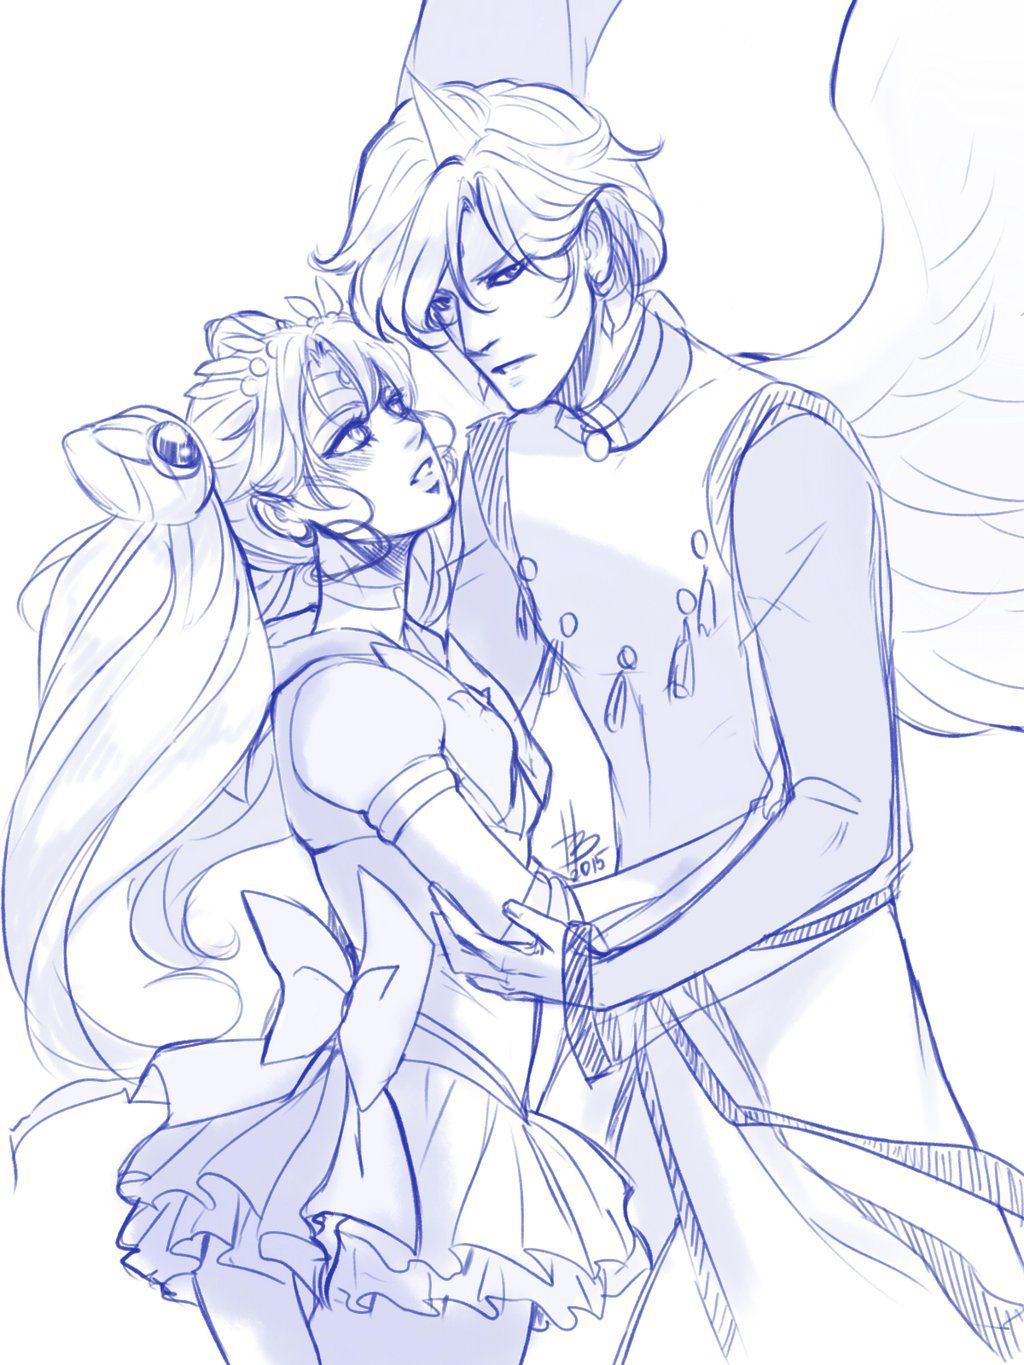 Chibiusa and Helios | Chibiusa & Helios (Sailor Moon) | Pinterest